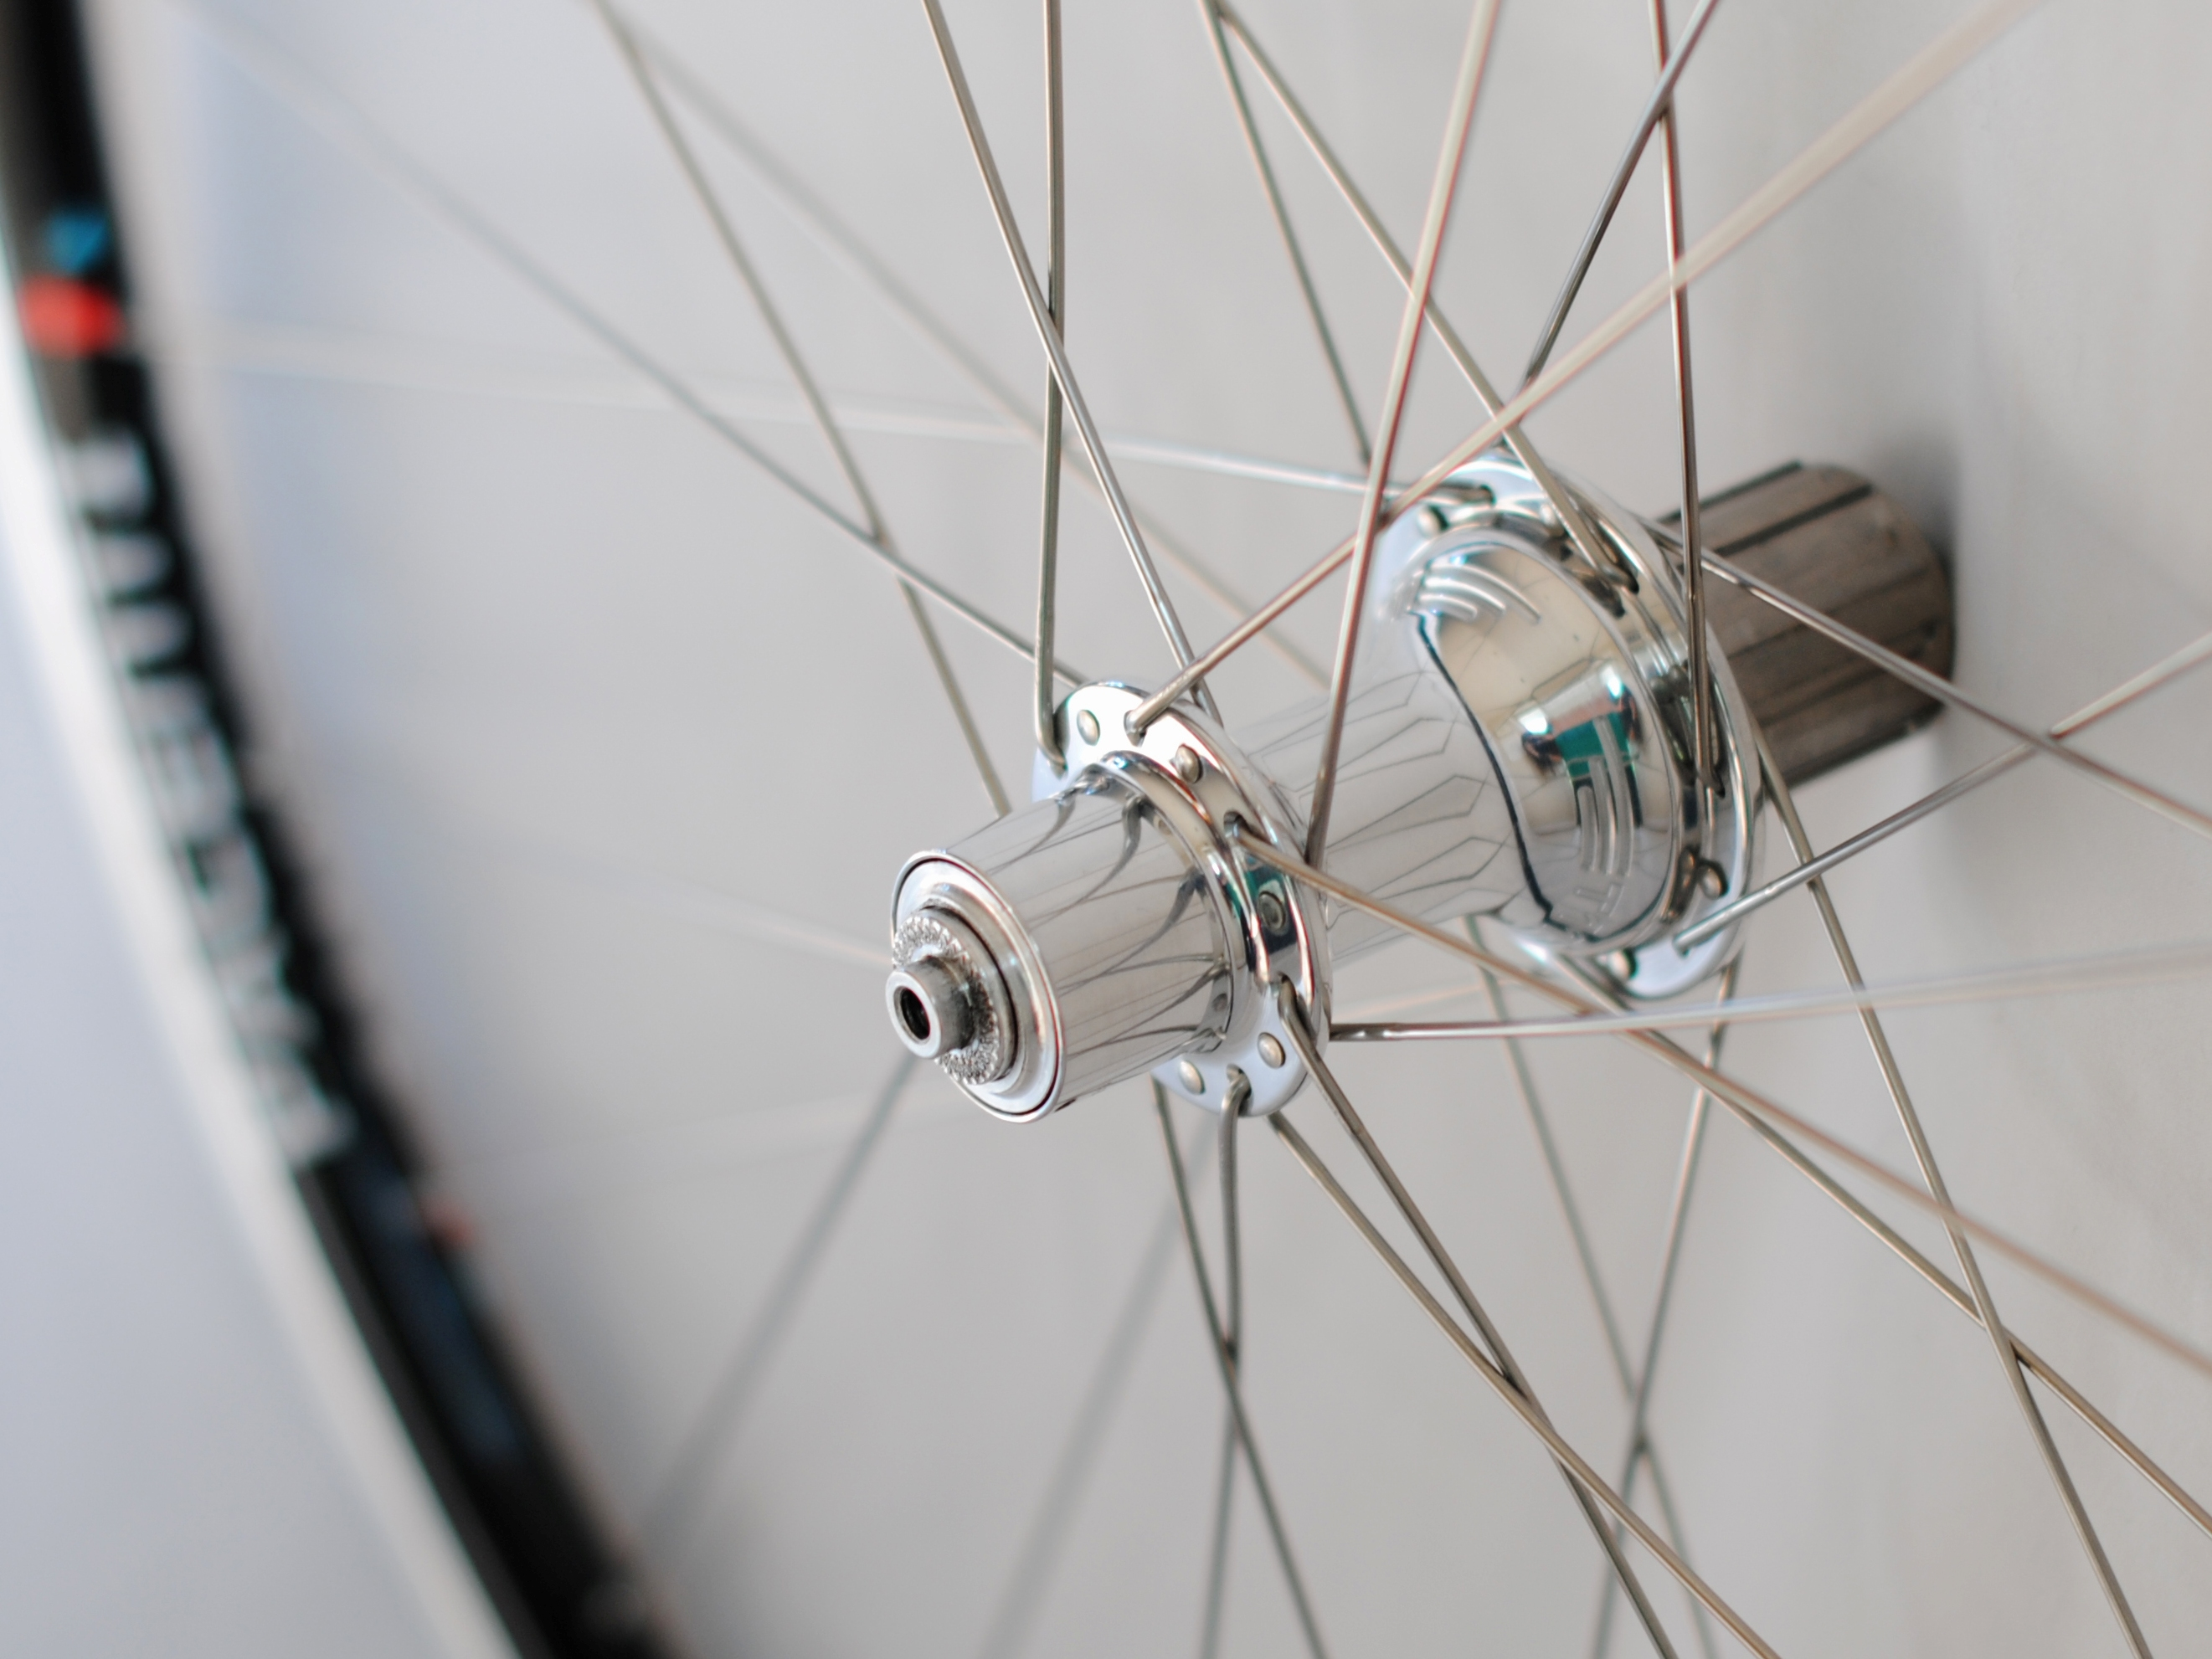 Classic White Industries T11 hubs in silver with Pacenti SL23 rims